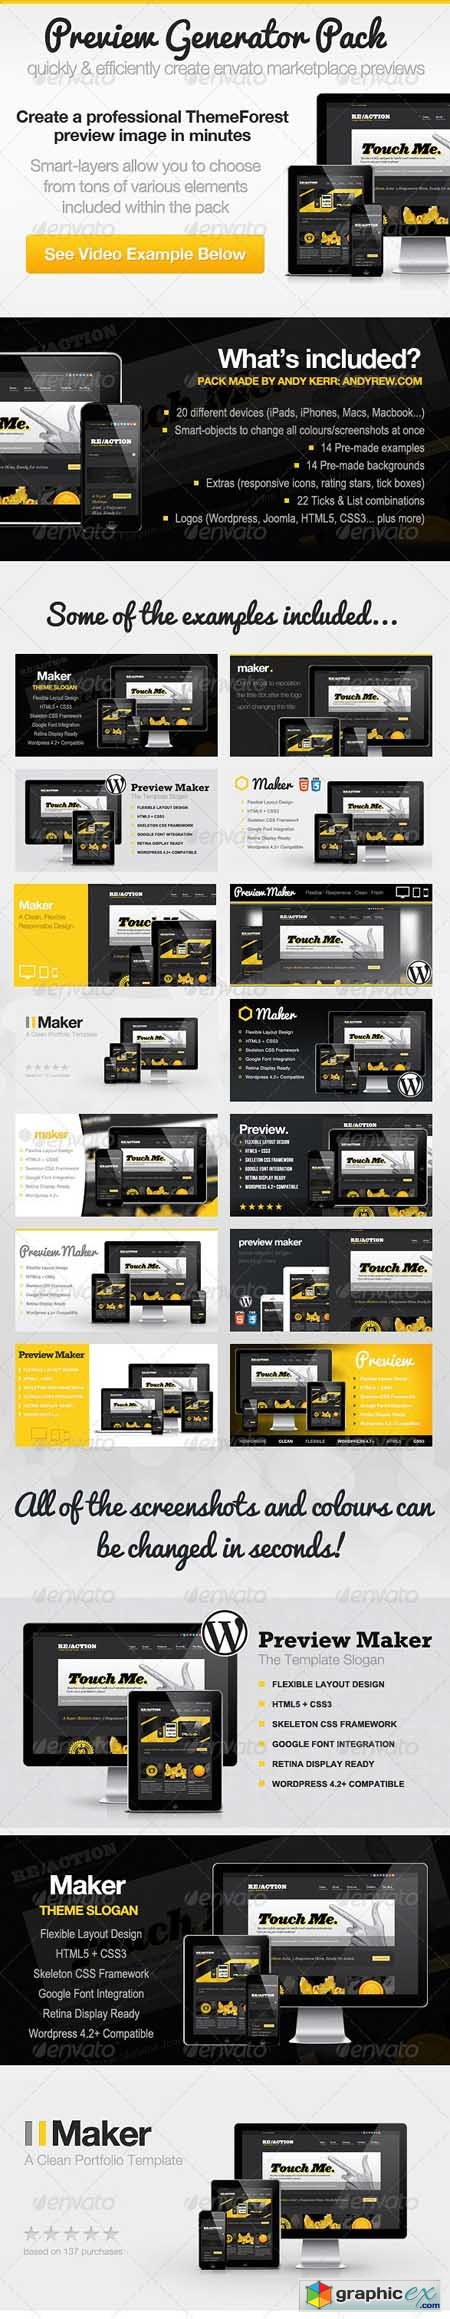 ThemeForest Preview Generator Pack